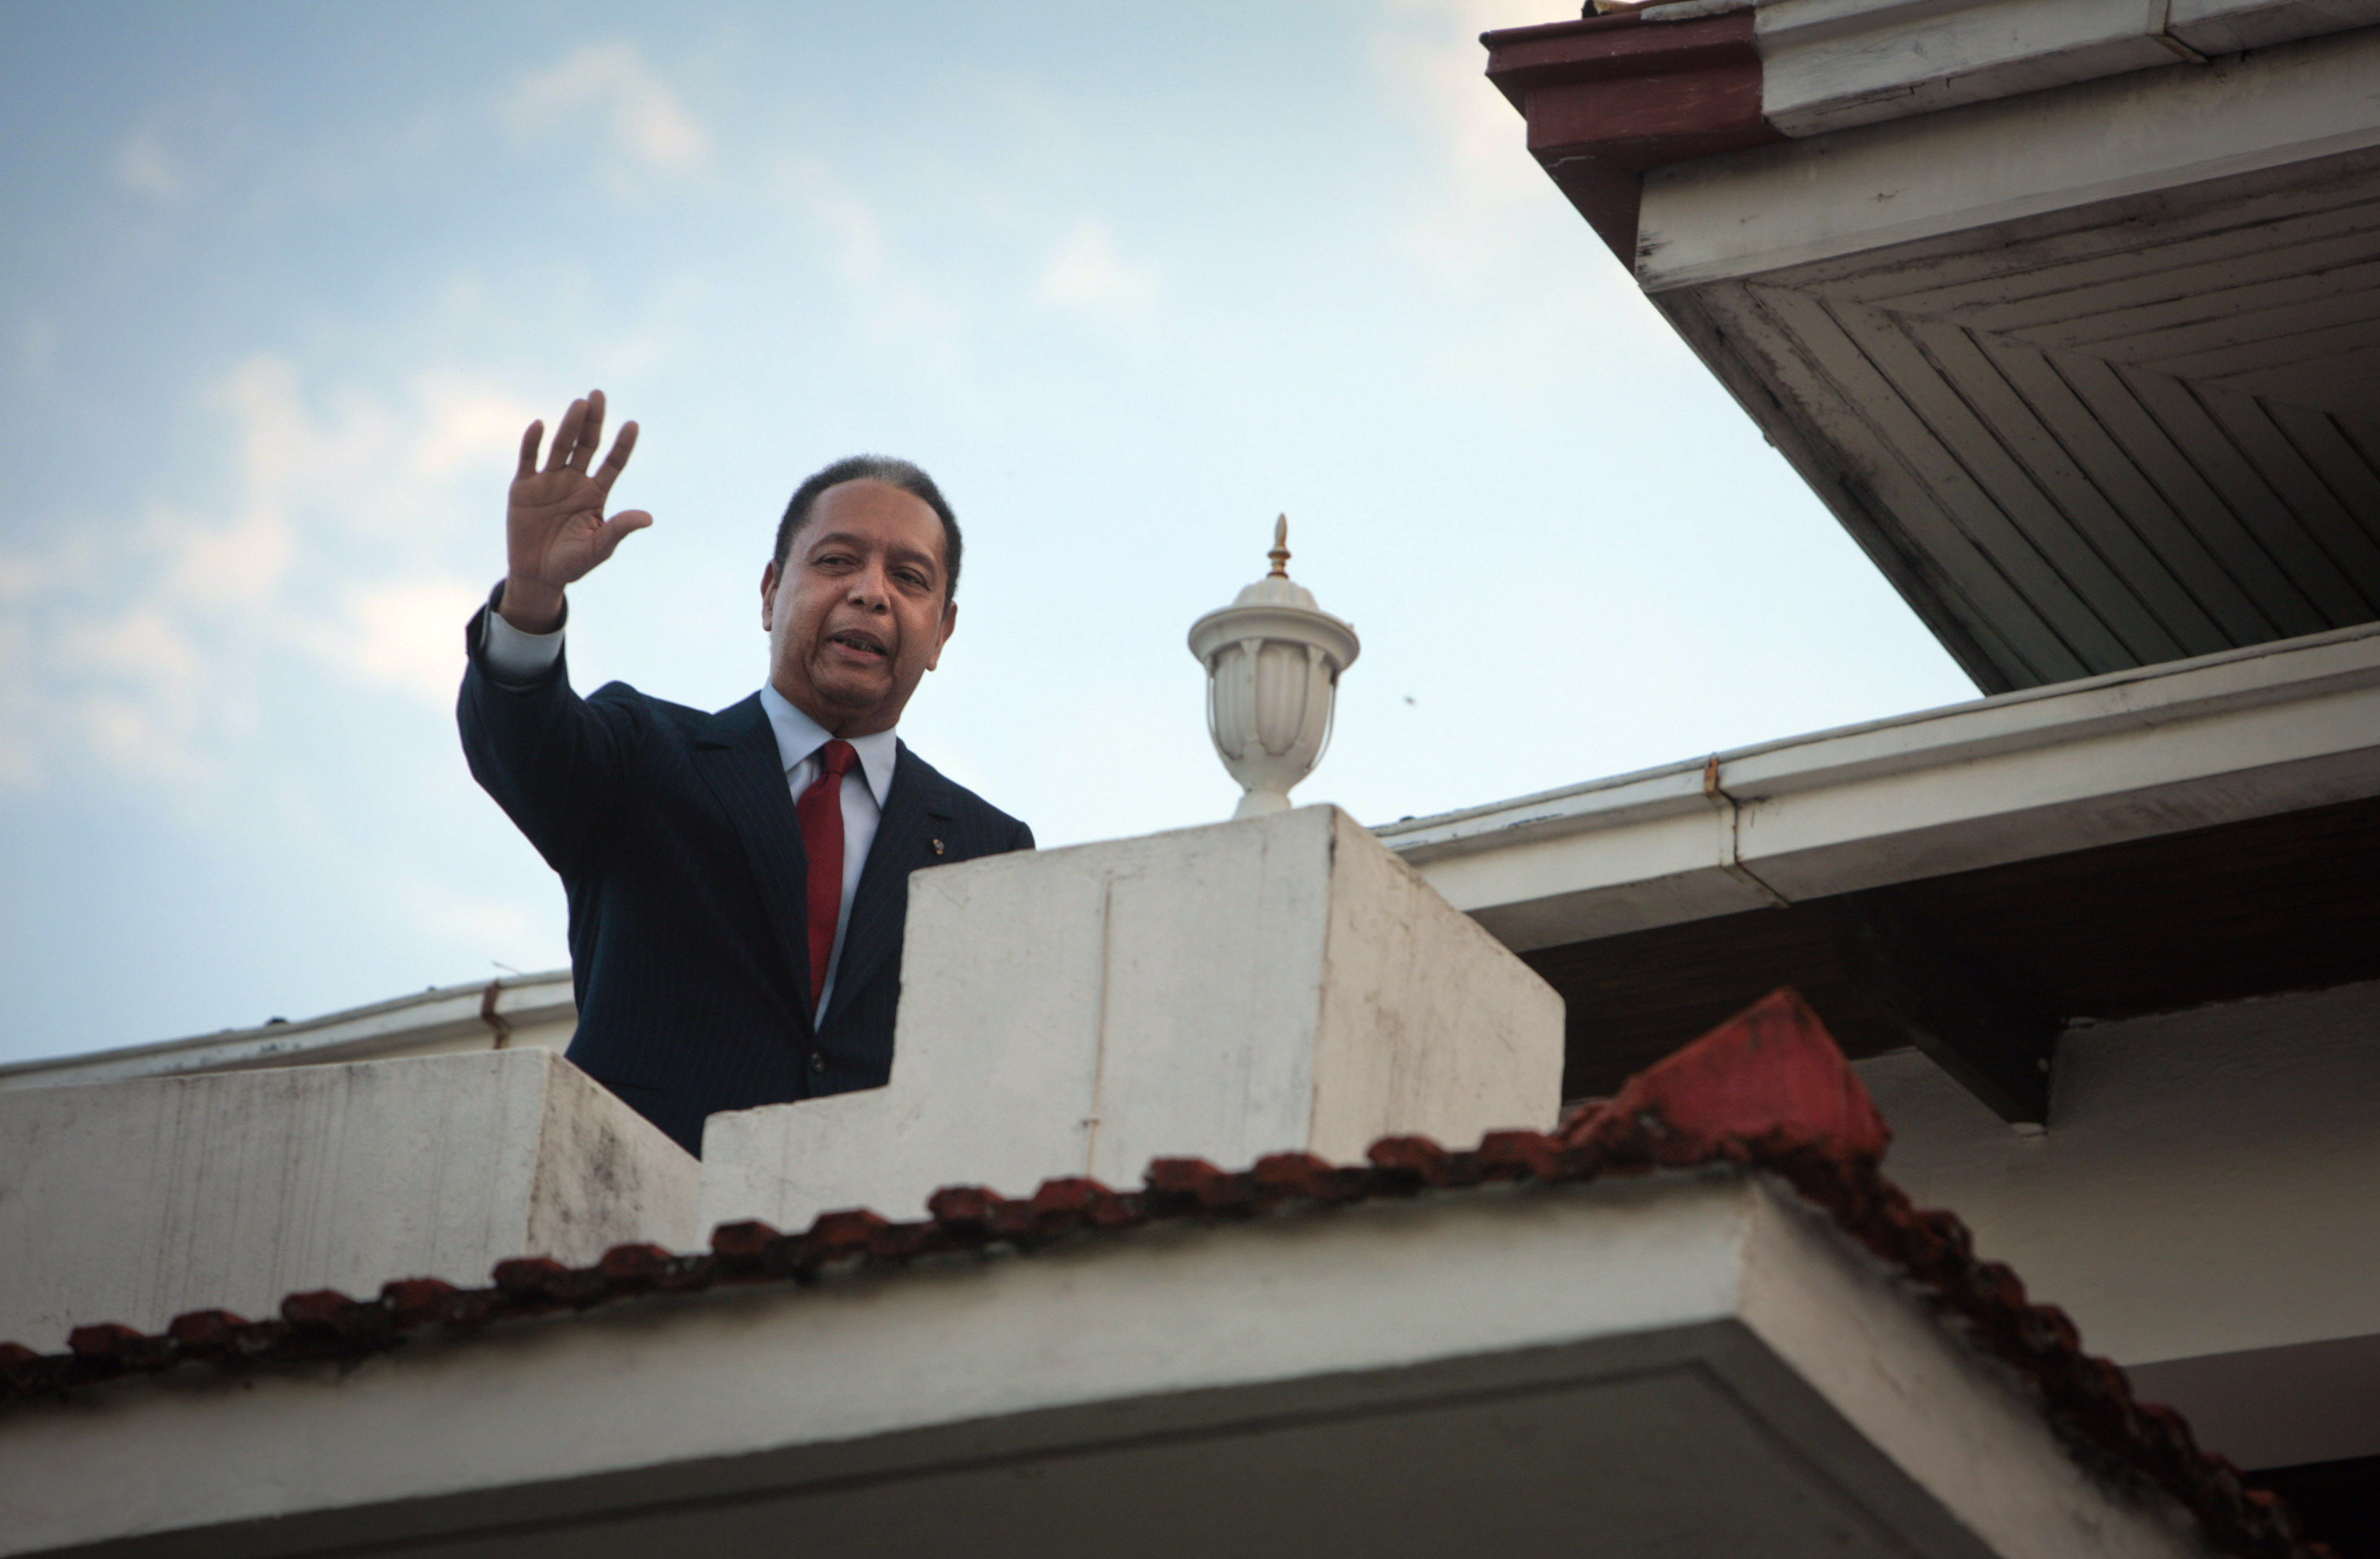 "PORT-AU-PRINCE, HAITI - JANUARY 21:  Former leader of Haiti Jean-Claude ""Baby Doc"" Duvalier waves from a balcony following a press conference at his house in Petionville January 21, 2010 in Port-au-Prince, Haiti. Duvalier returned from exile earlier this week and was questioned by authorities before being released. His critics accuse him of stealing from the treasury during his rule and for crimes against humanity.  (Photo by Lee Celano/Getty Images)"